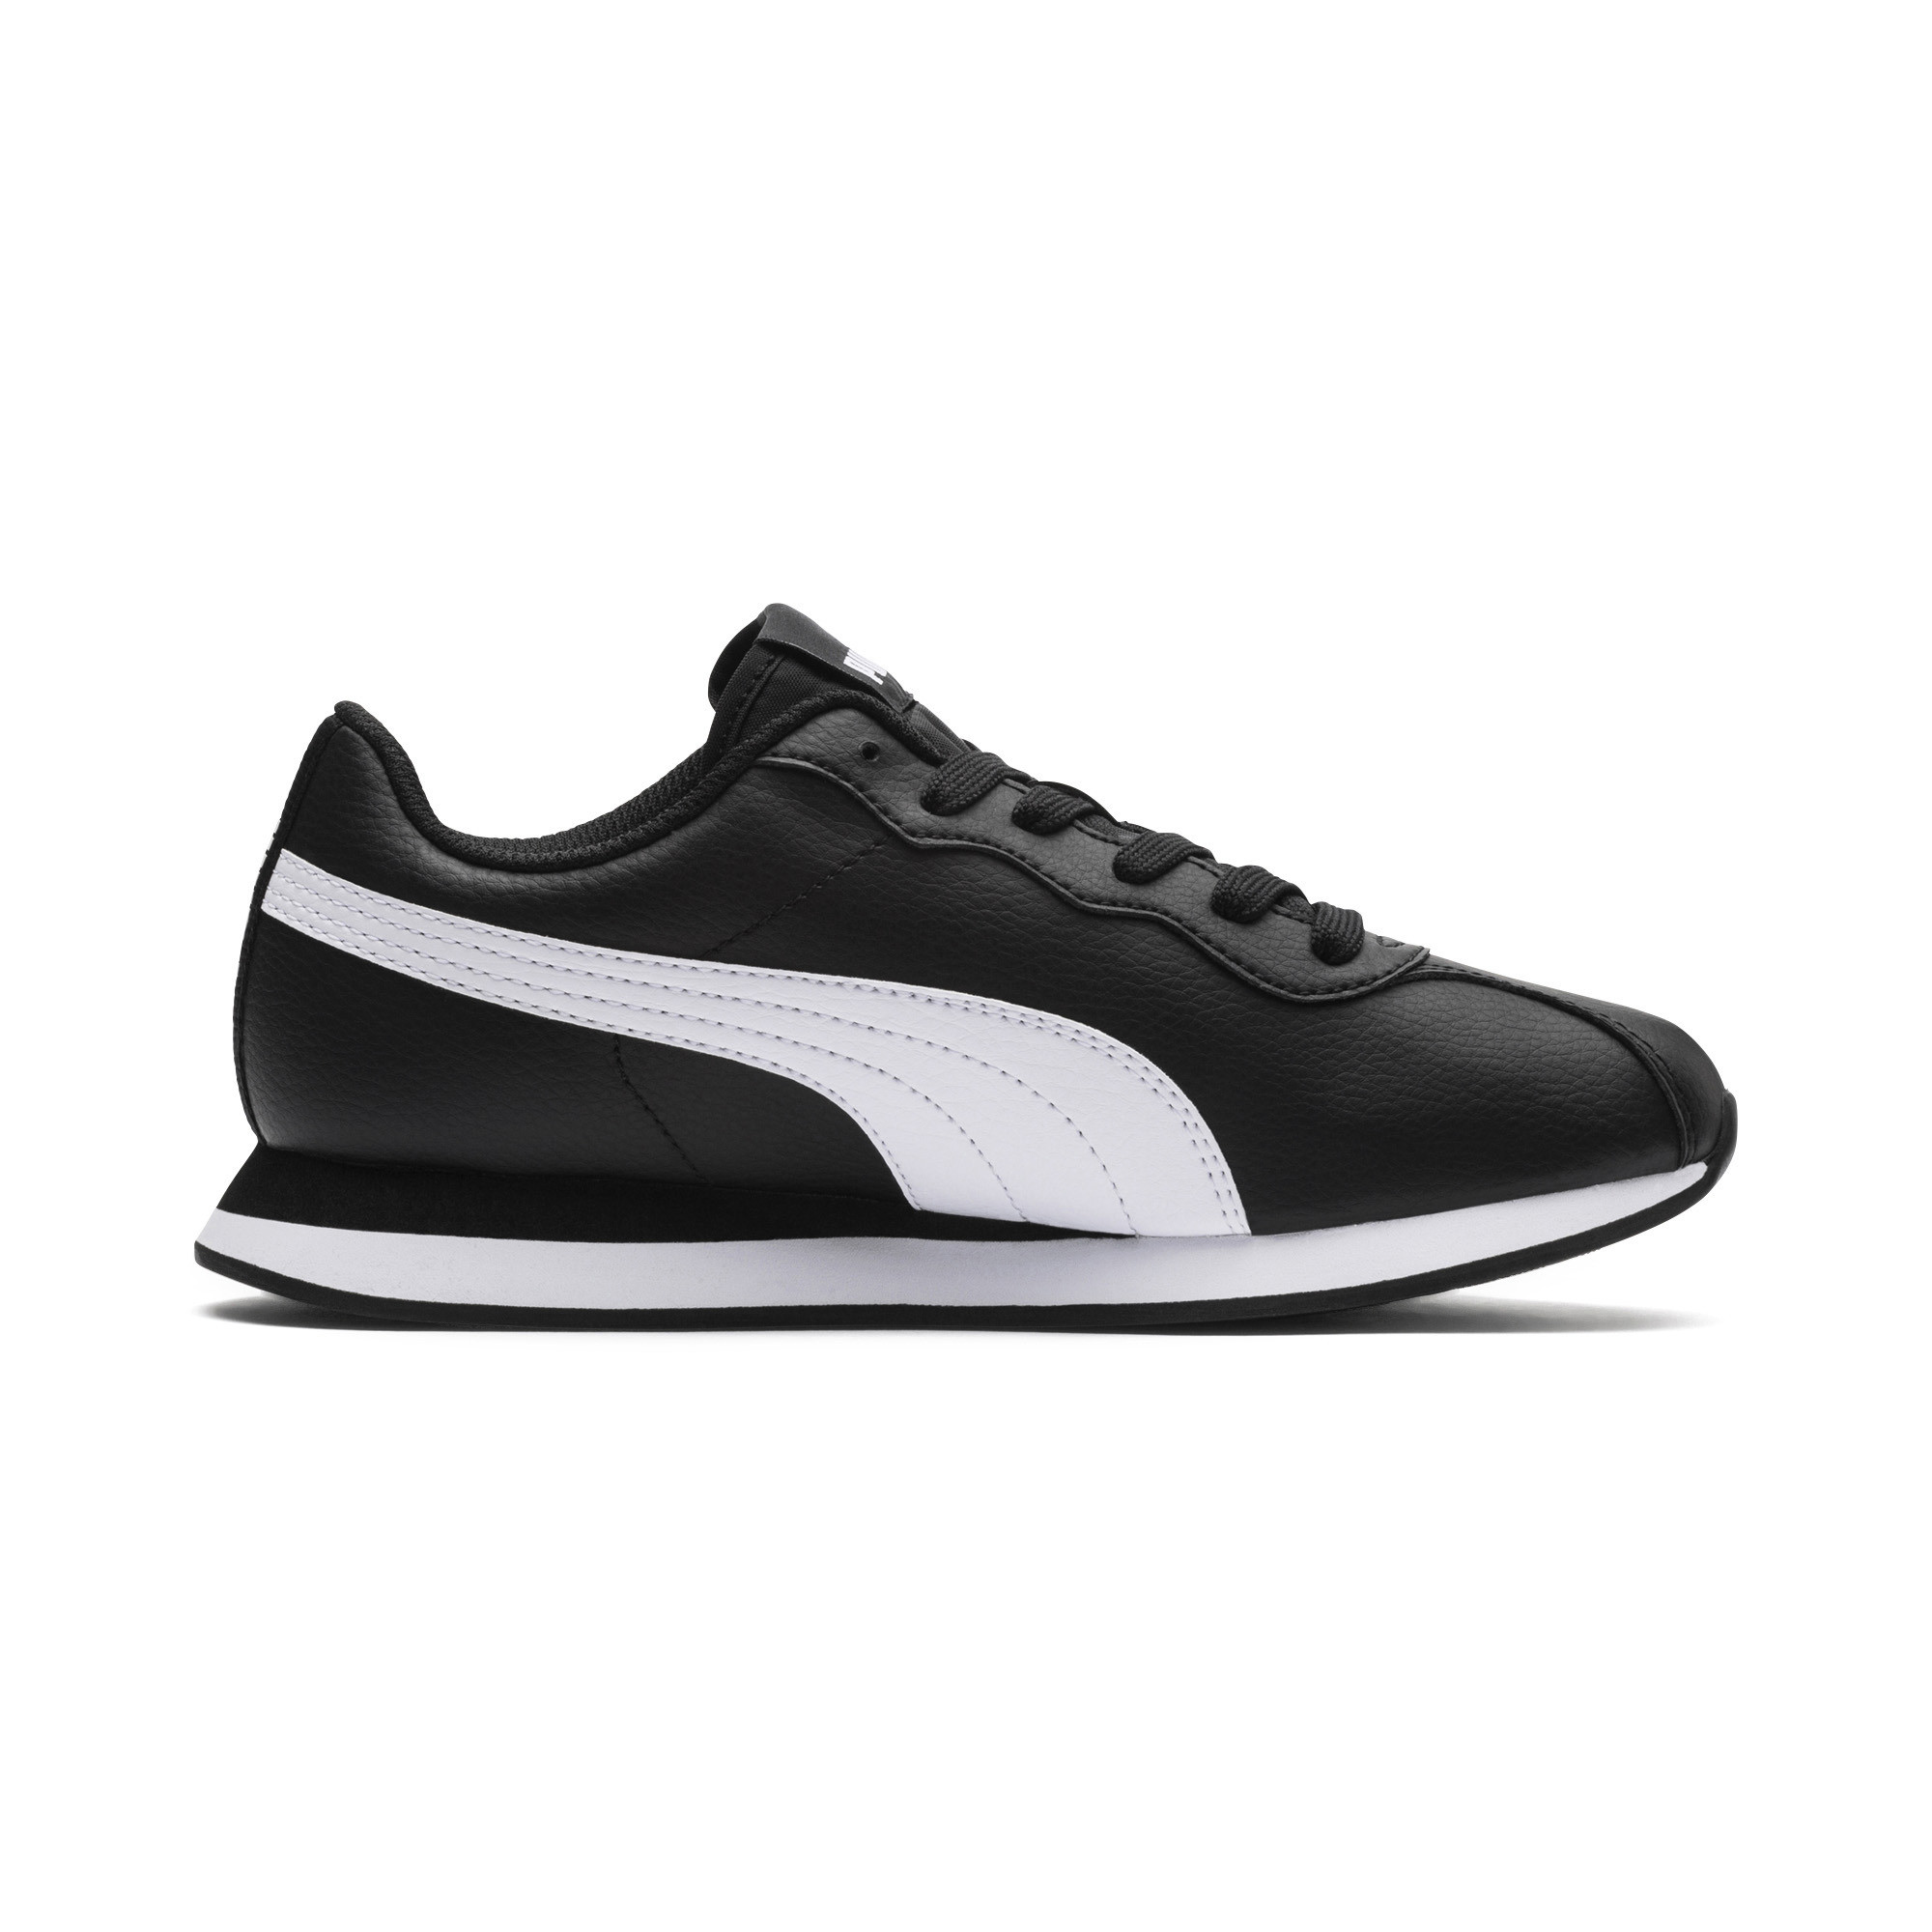 PUMA-Turin-II-Sneakers-JR-Kids-Shoe-Kids thumbnail 18